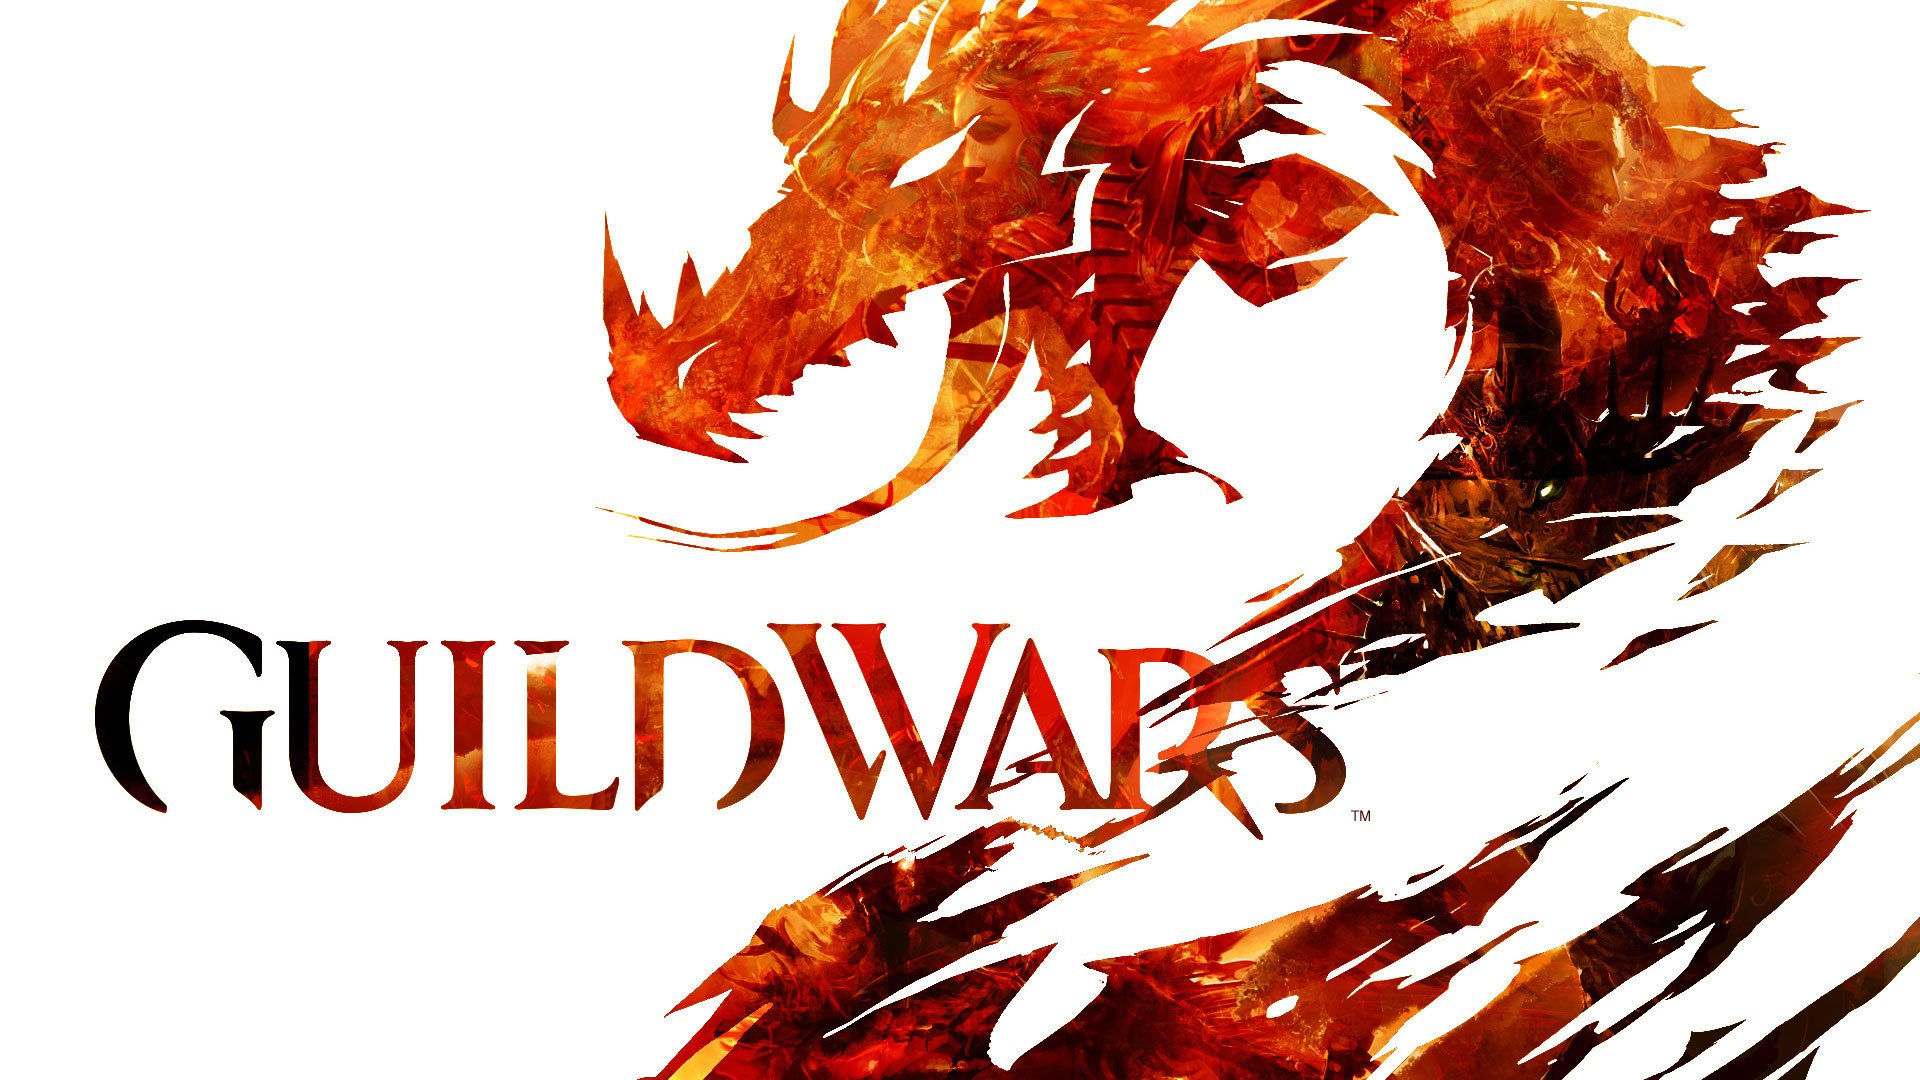 Guild Wars 2 Celebrates 7 Million Players Attack Of The Fanboy